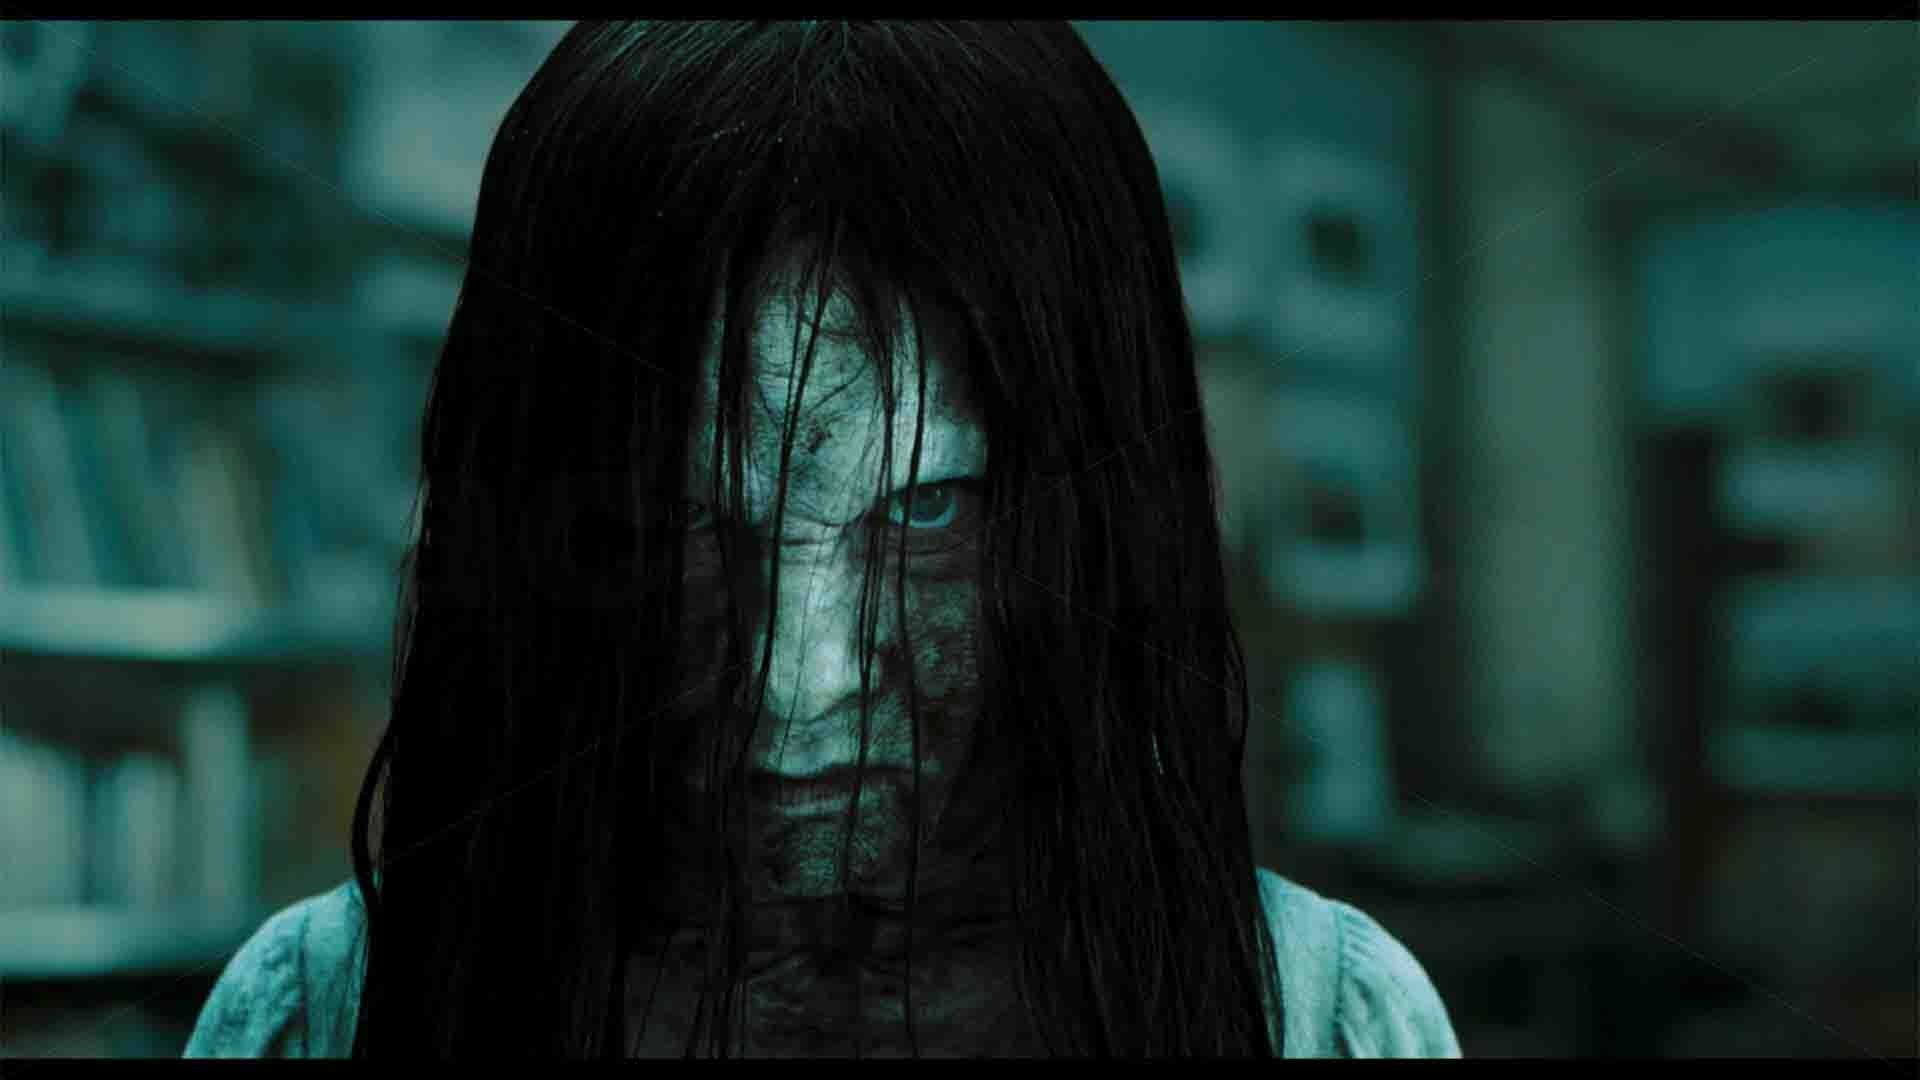 my ghost story in hindi, Hindi Horror Stories, best horror story in